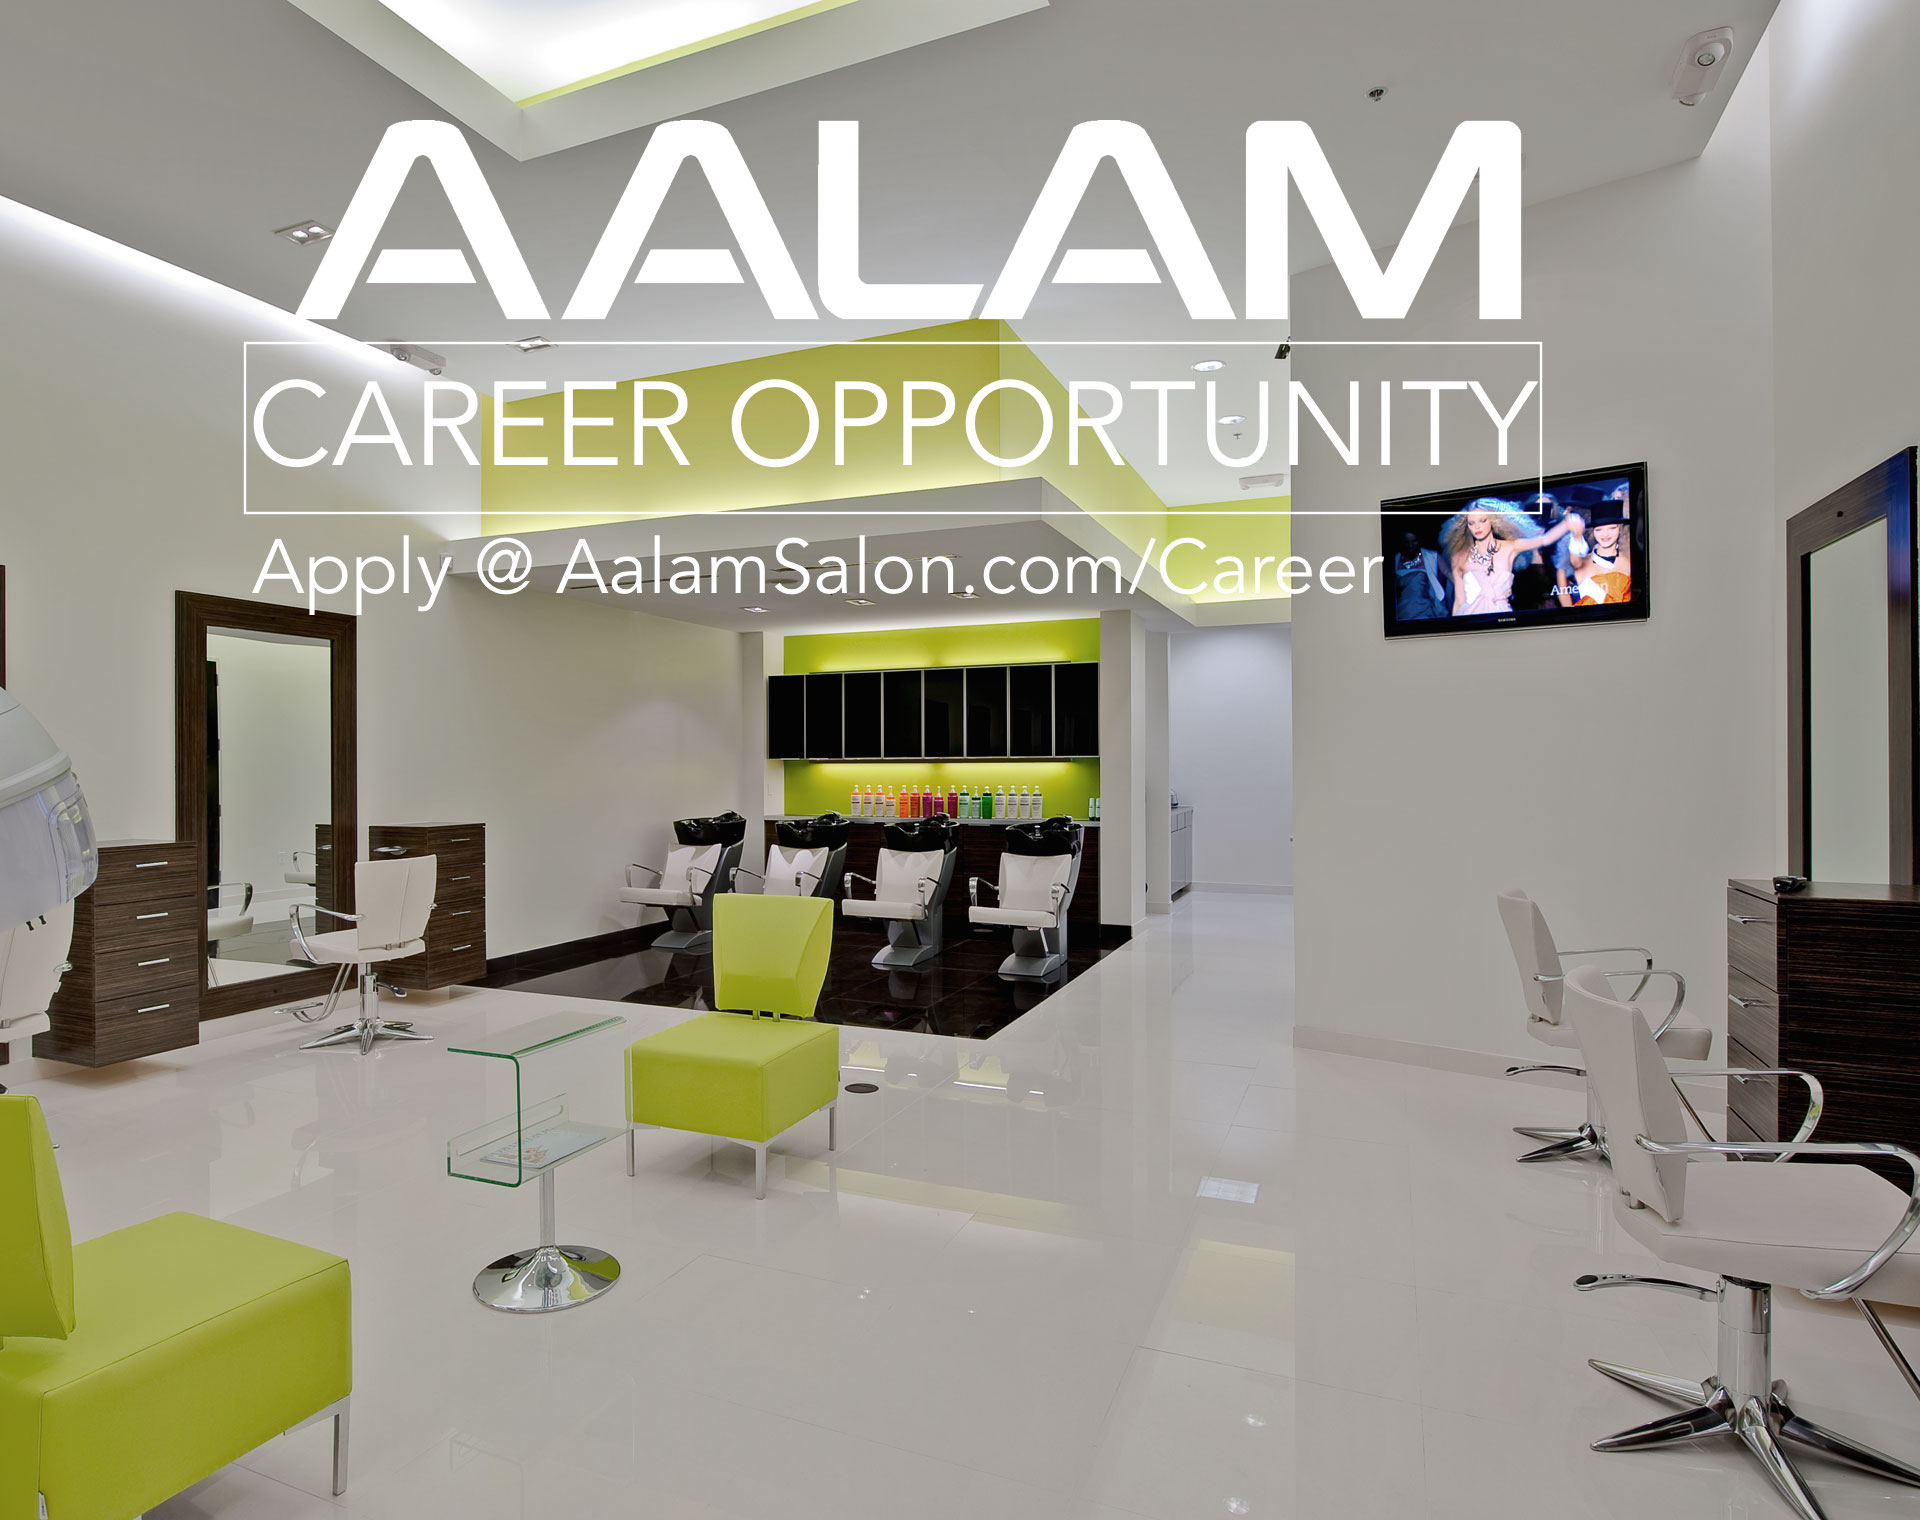 AALAM Employment Career Opportunity Now Hiring Experienced Hairdresser Apprentice Hair Stylist